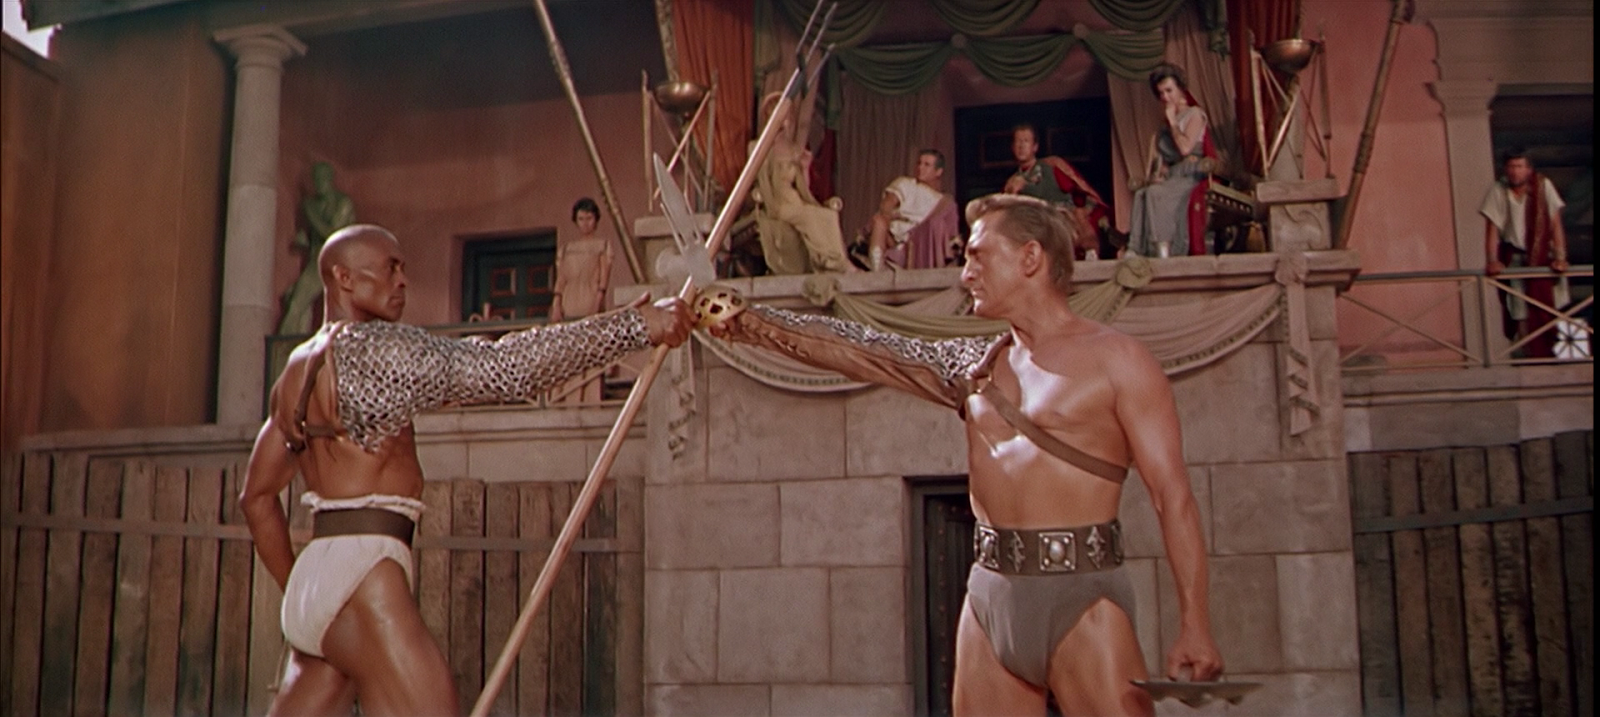 spartacus_fight